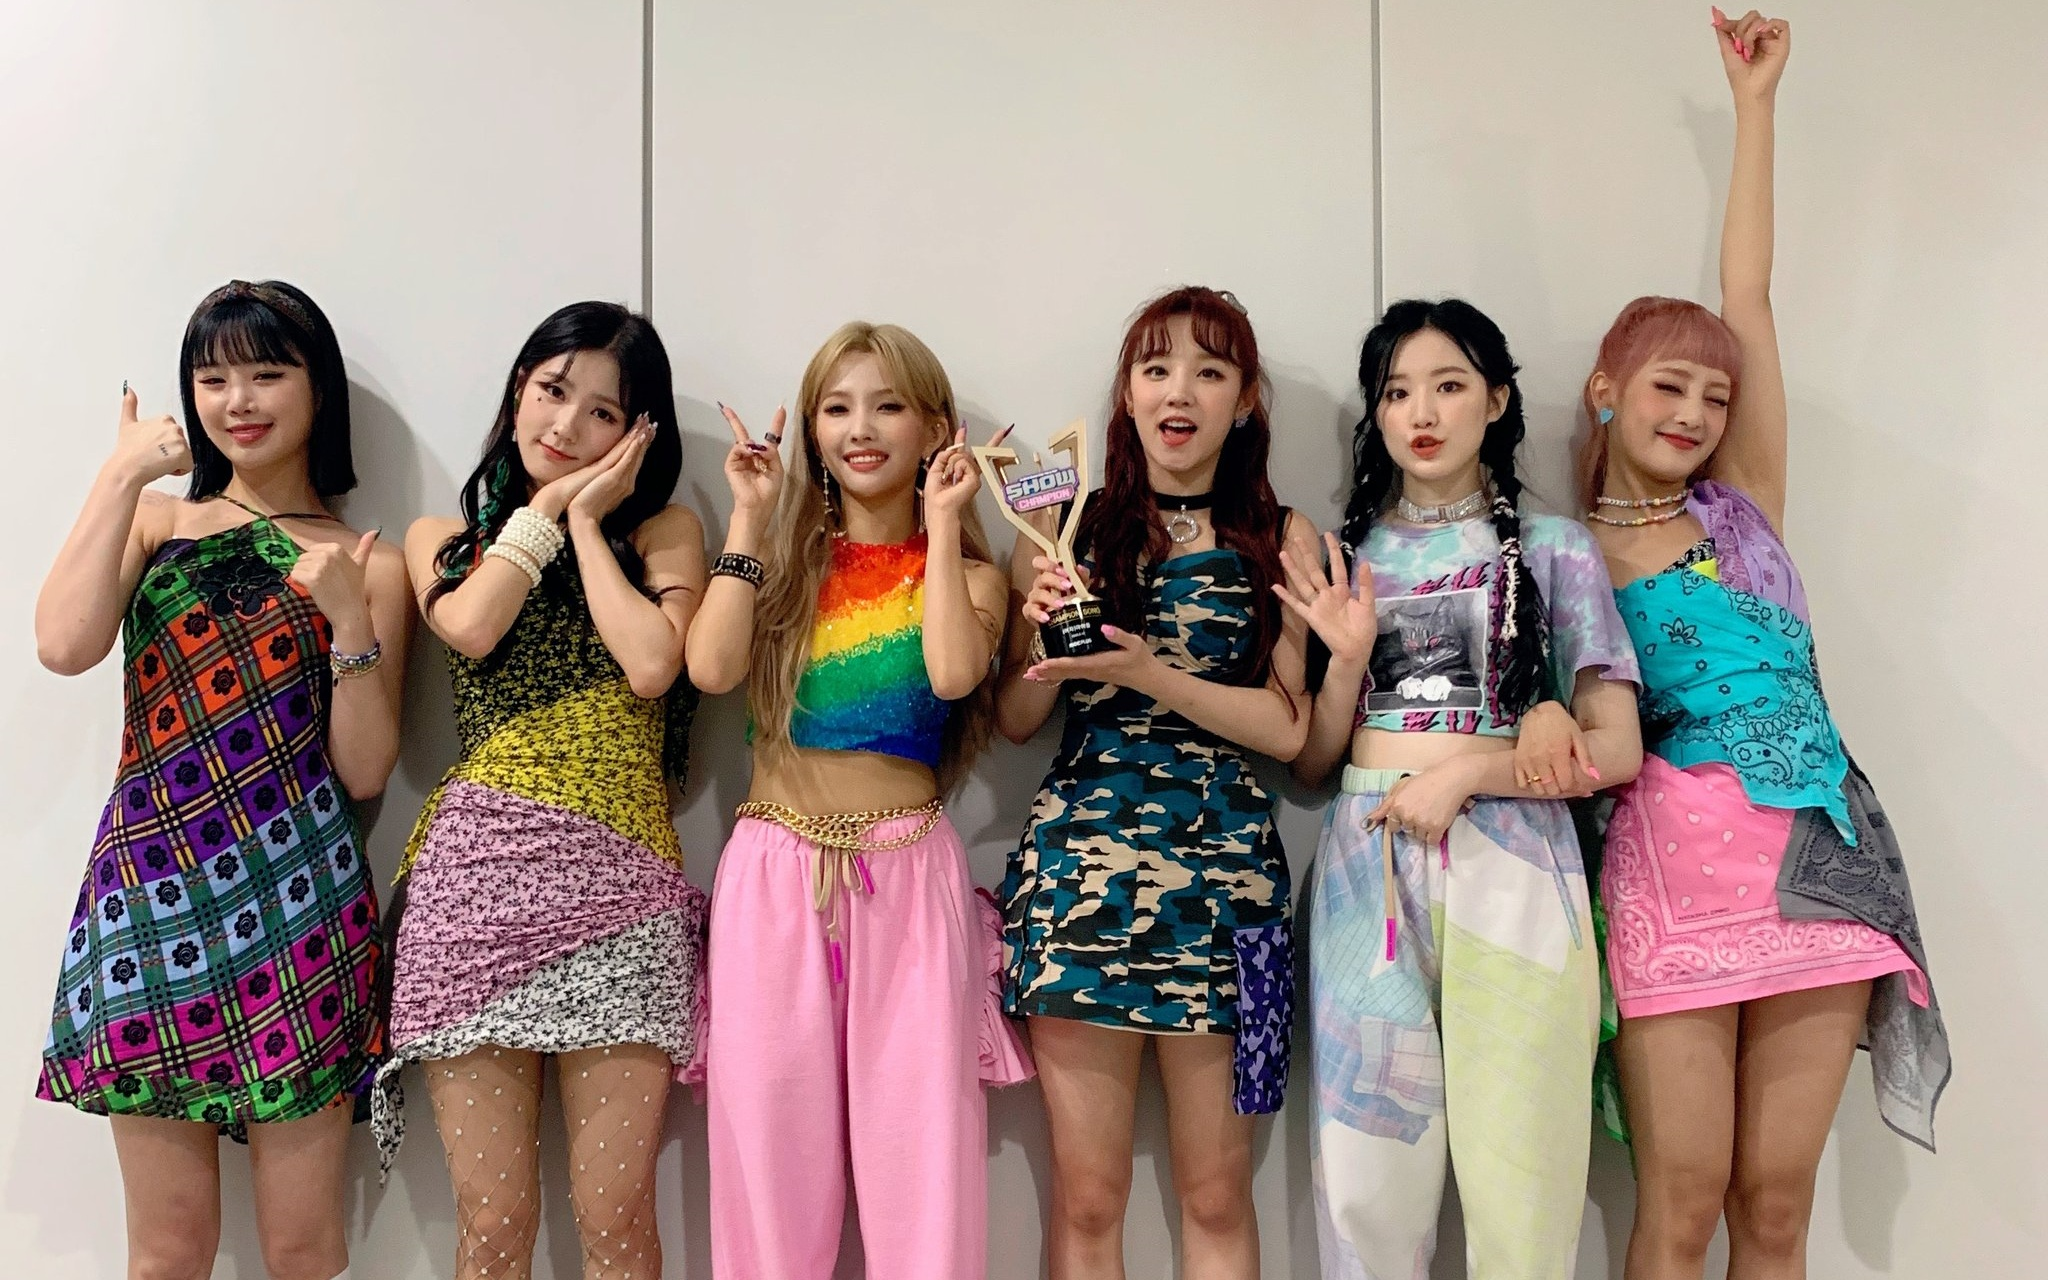 (G)I-DLE Takes Home The 1st Trophy For 'DUMDi DUMDi' on 'Show Champion'